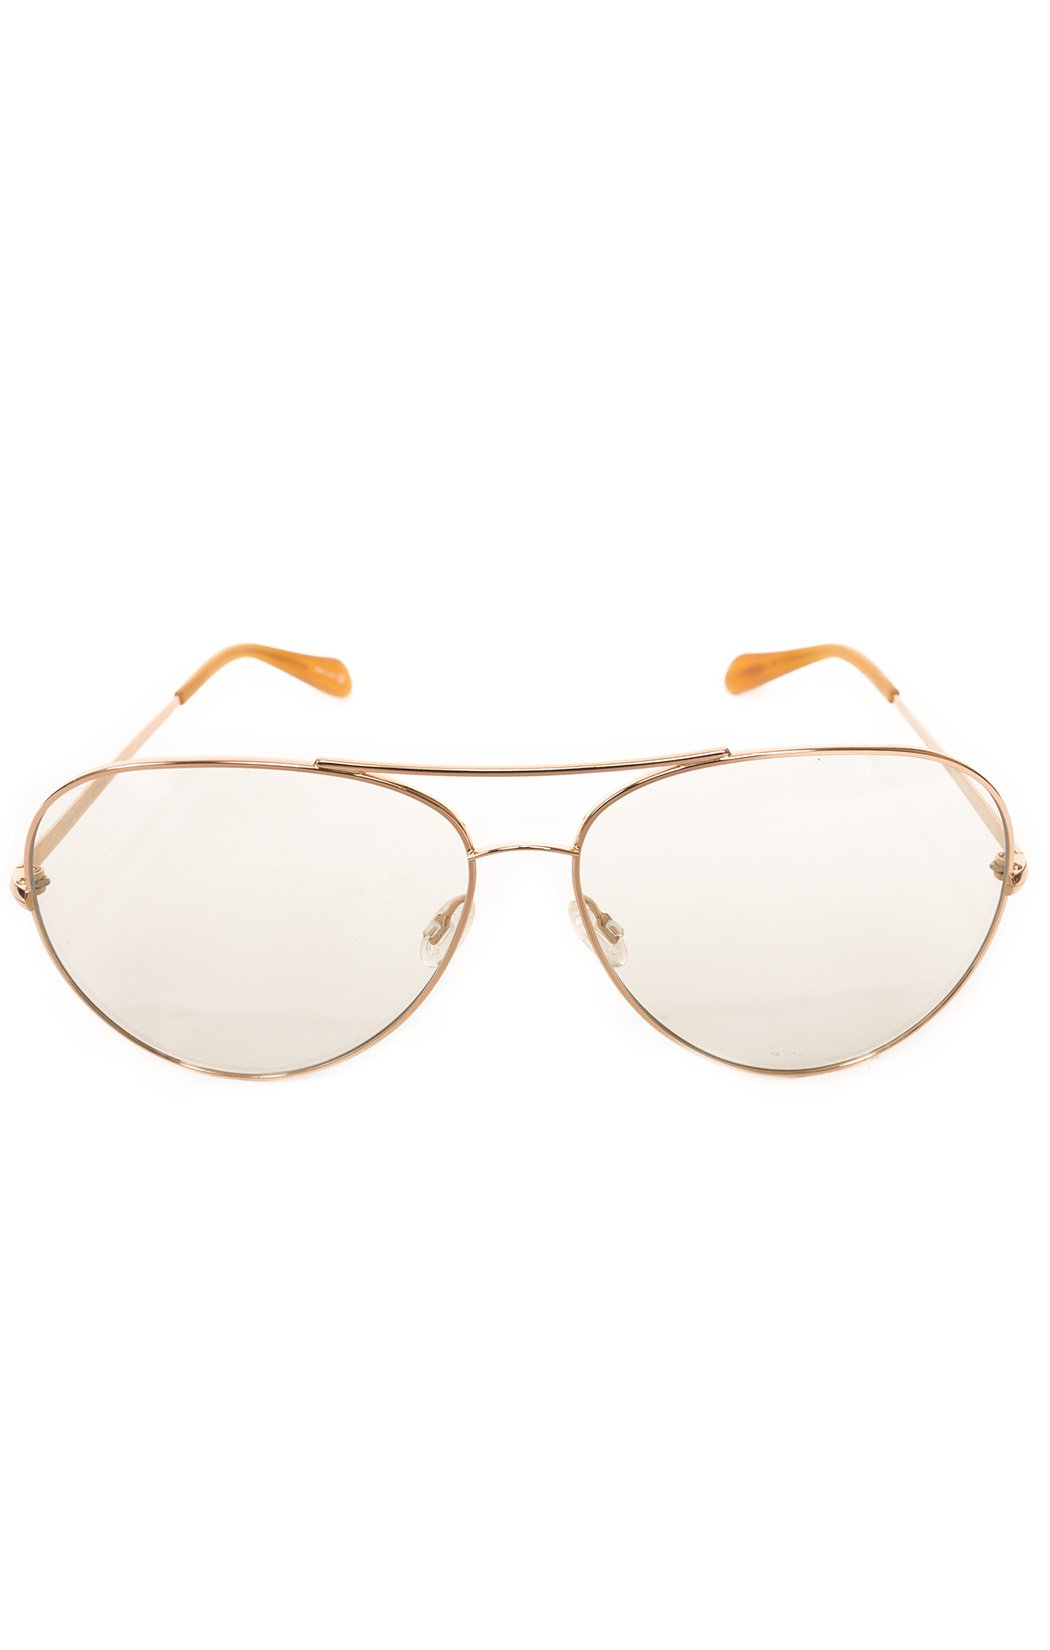 "Front view of OLIVER PEOPLES Sunglasses  Size: 5.75"" W x 2.2"" H"